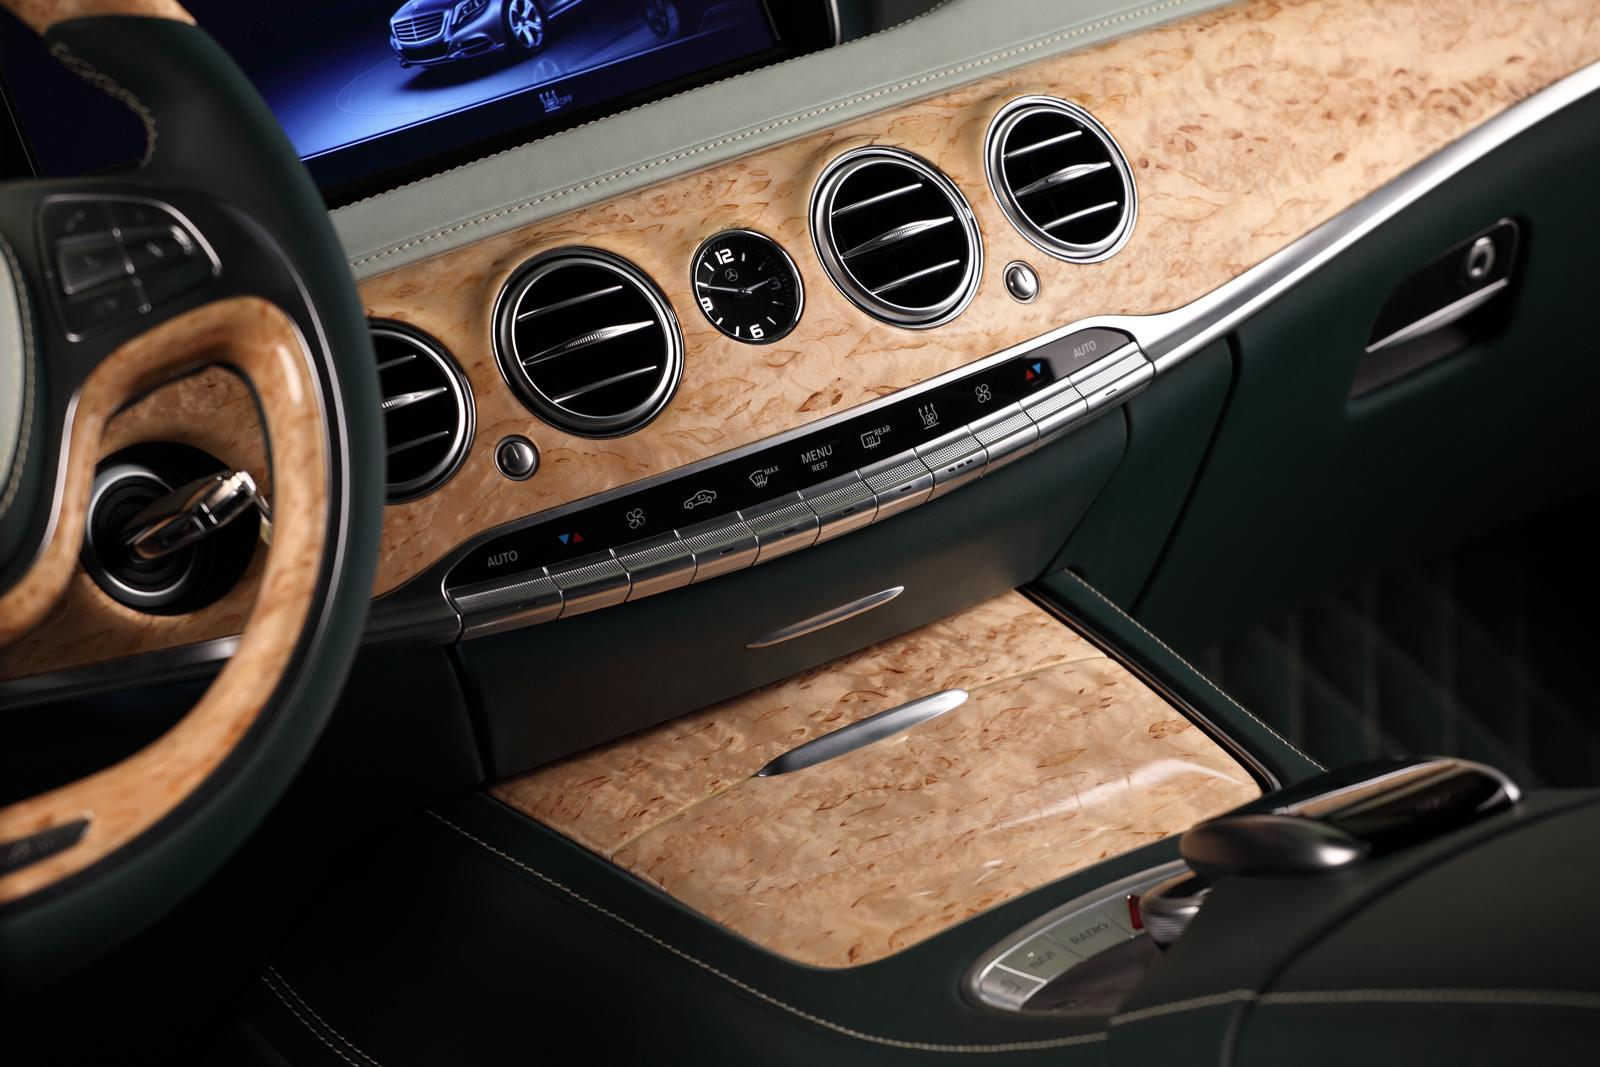 Mercedes Benz S600 Guard Interior Becomes Arab Story Via HD Wallpapers Download free images and photos [musssic.tk]